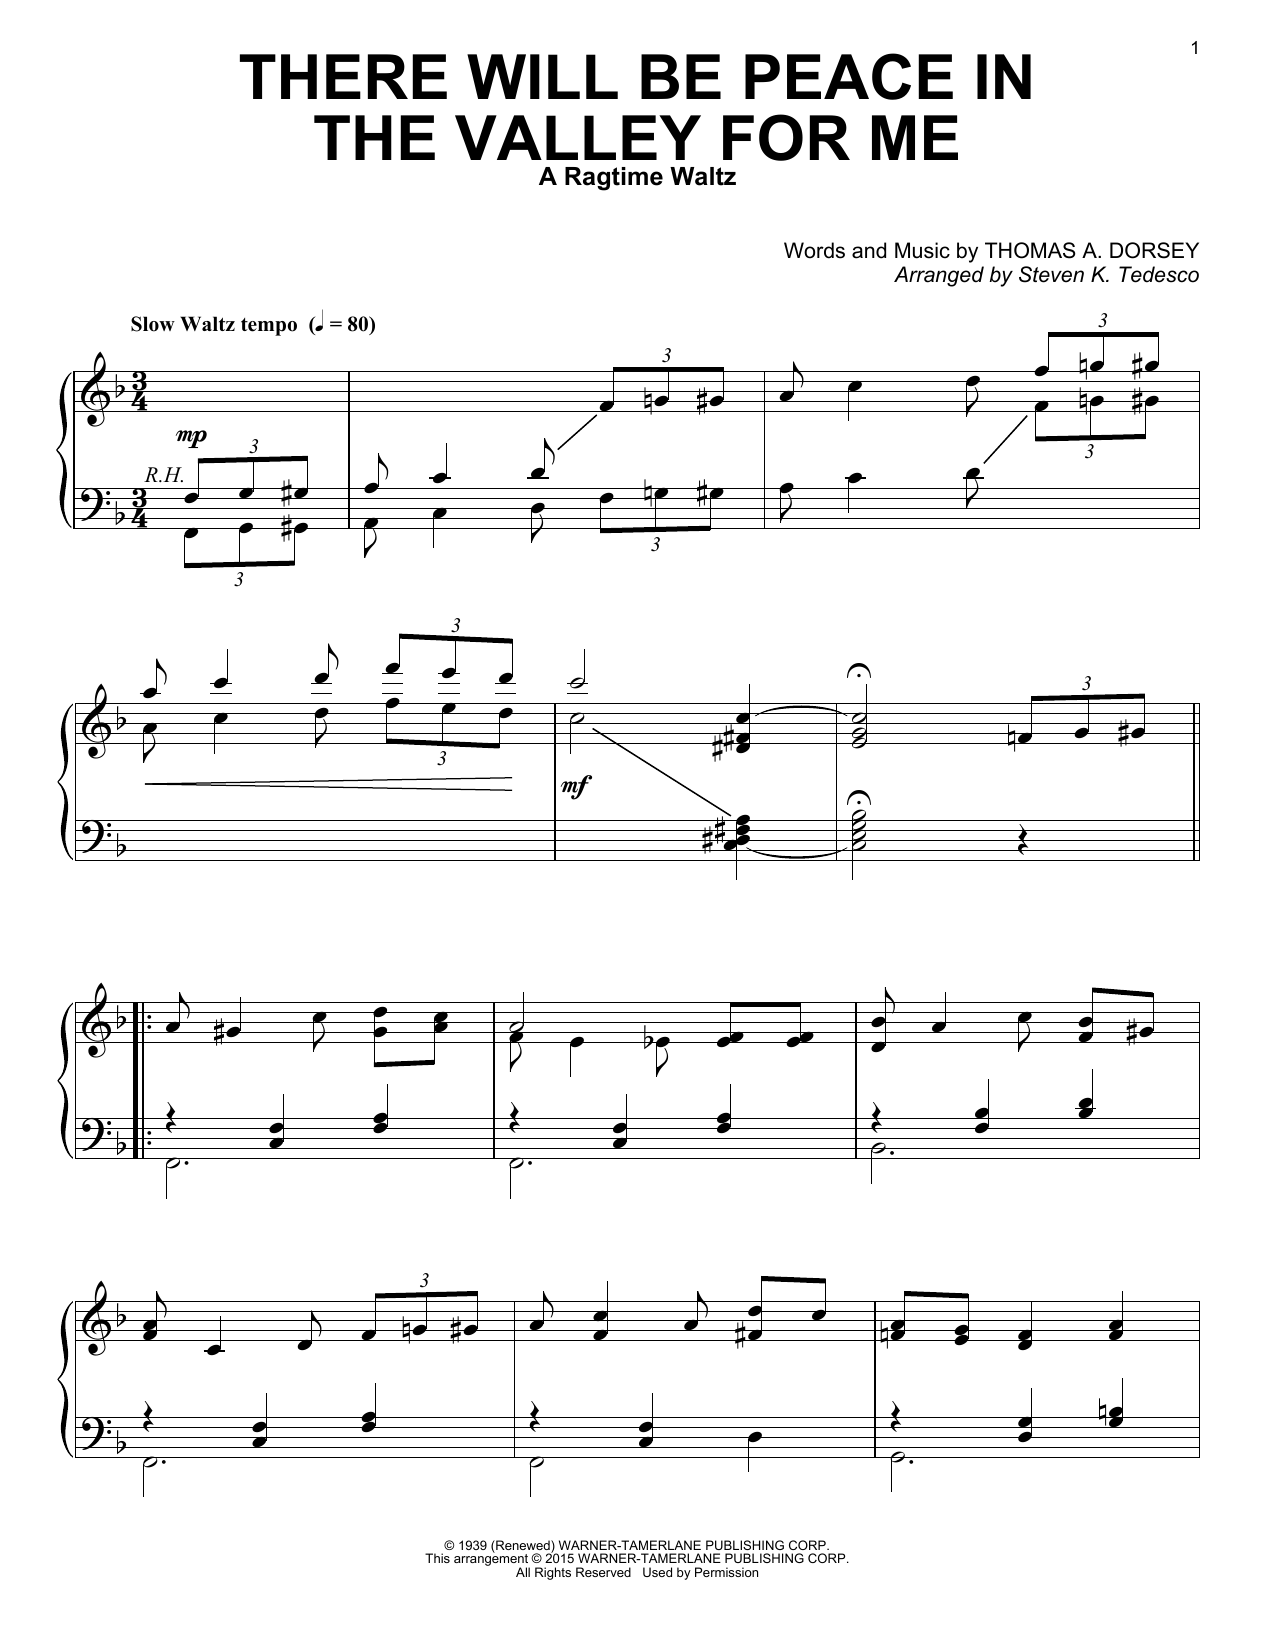 Sheet music digital files to print licensed thomas a dorsey sheet music digital files to print licensed thomas a dorsey digital sheet music hexwebz Image collections